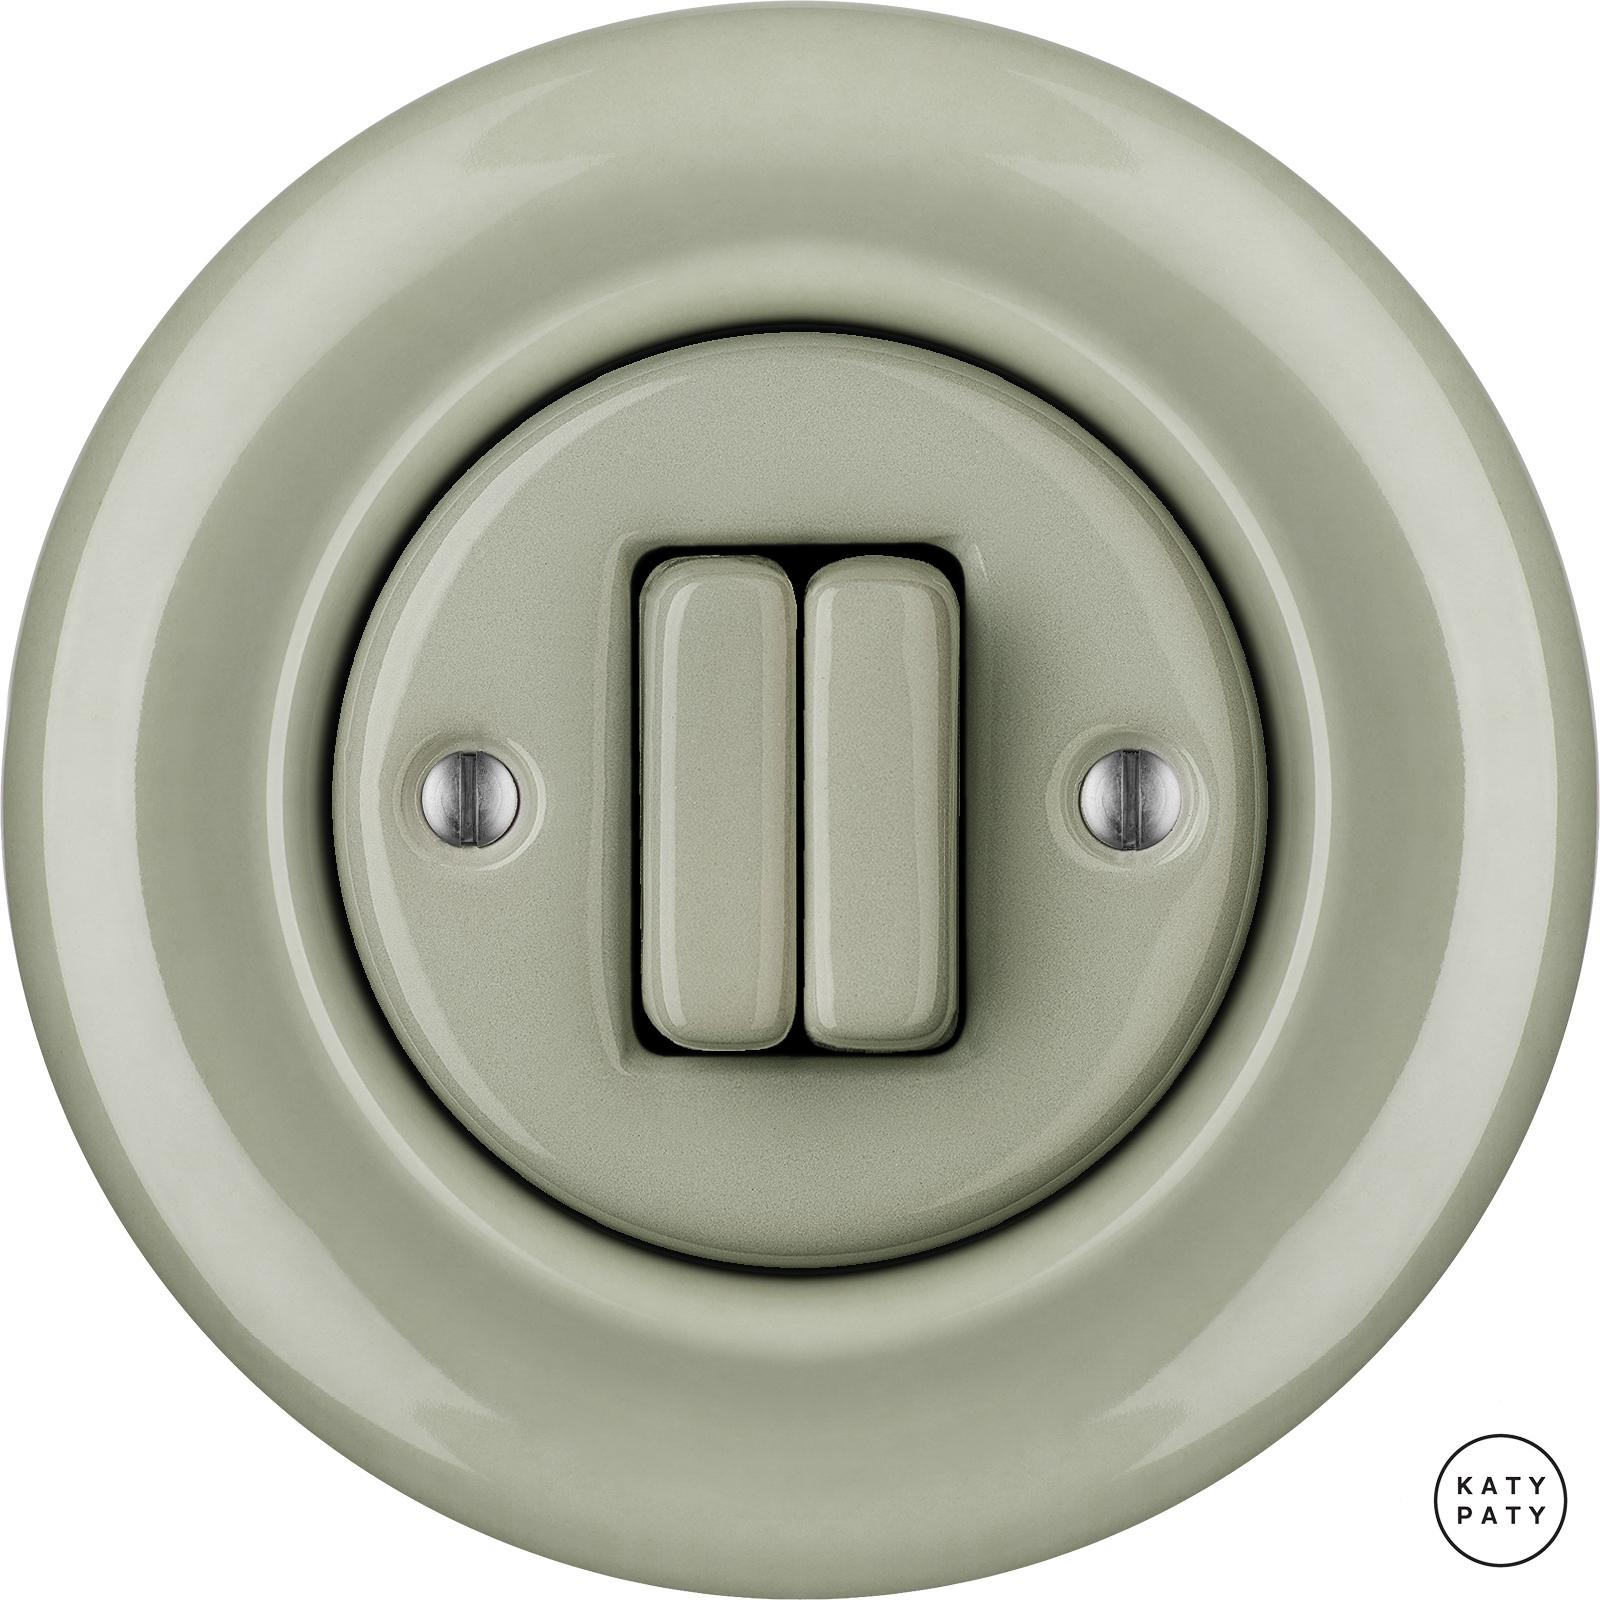 Porcelain switches - a 2 gang ()  - CHLORA | Katy Paty